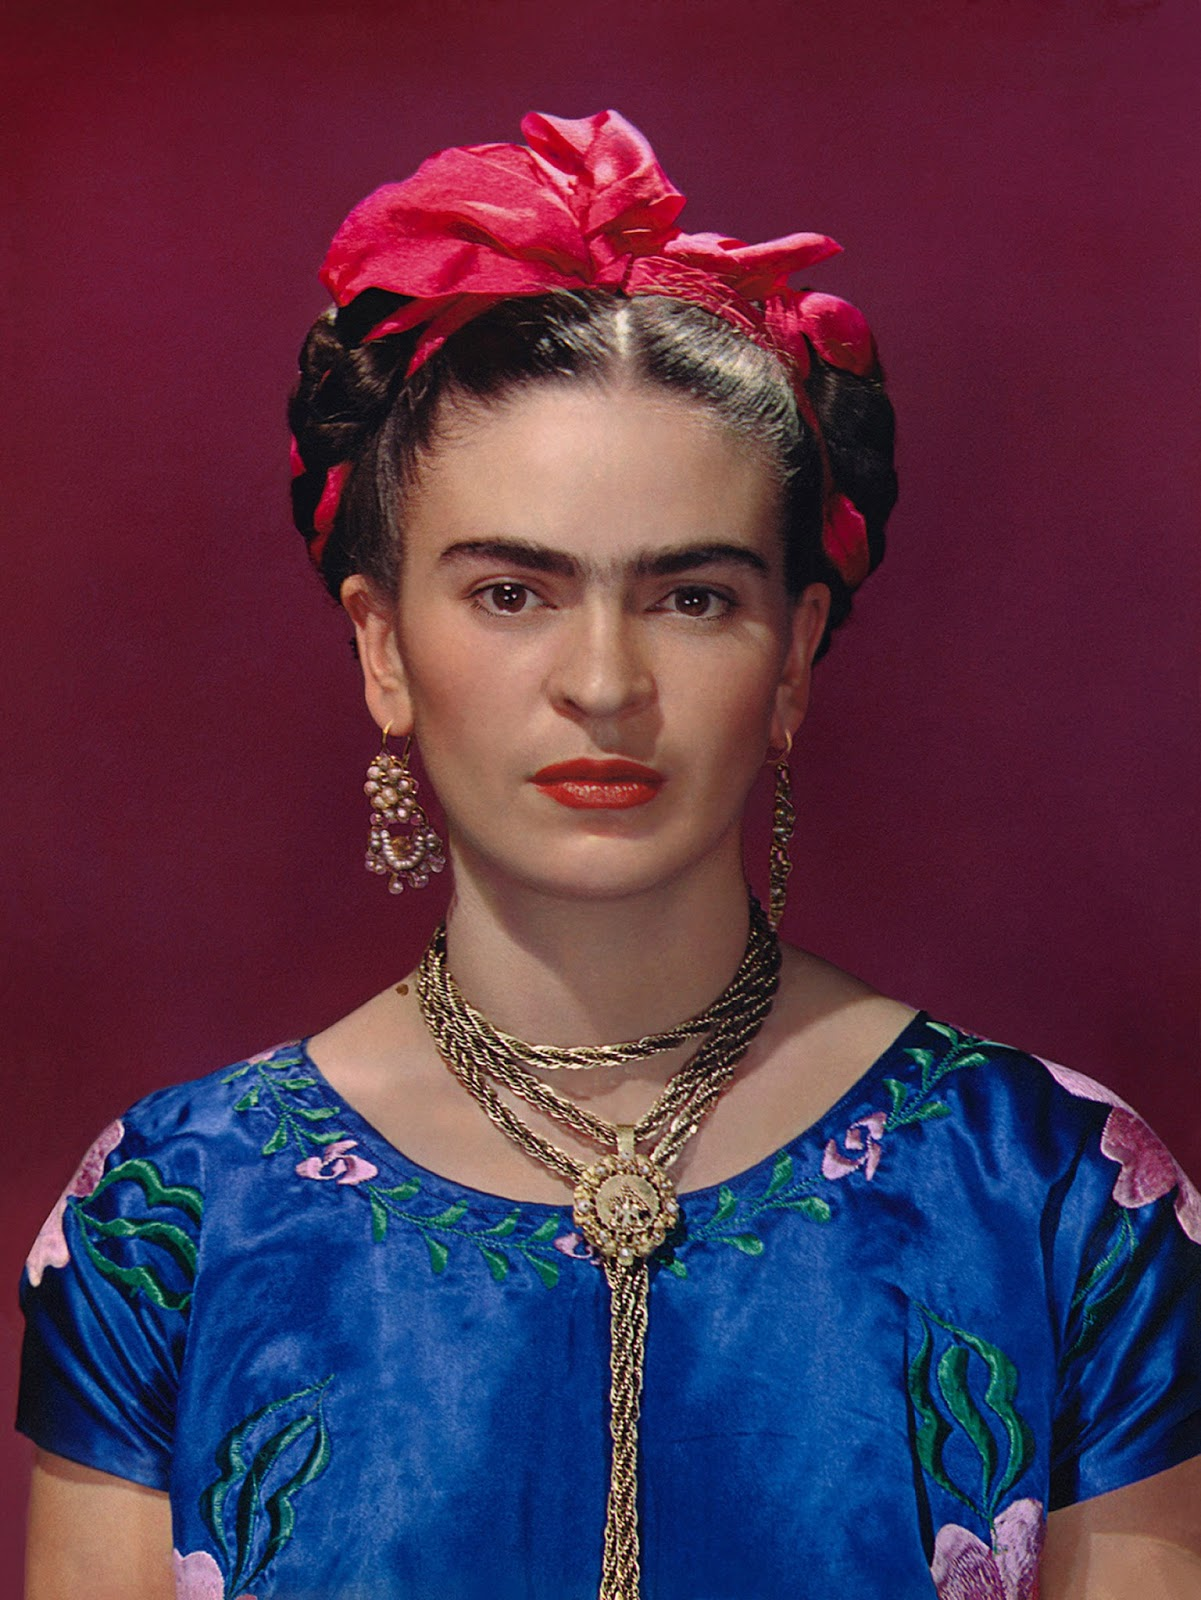 1939 Nickolas Muray. Frida with Blue Satin Blouse2